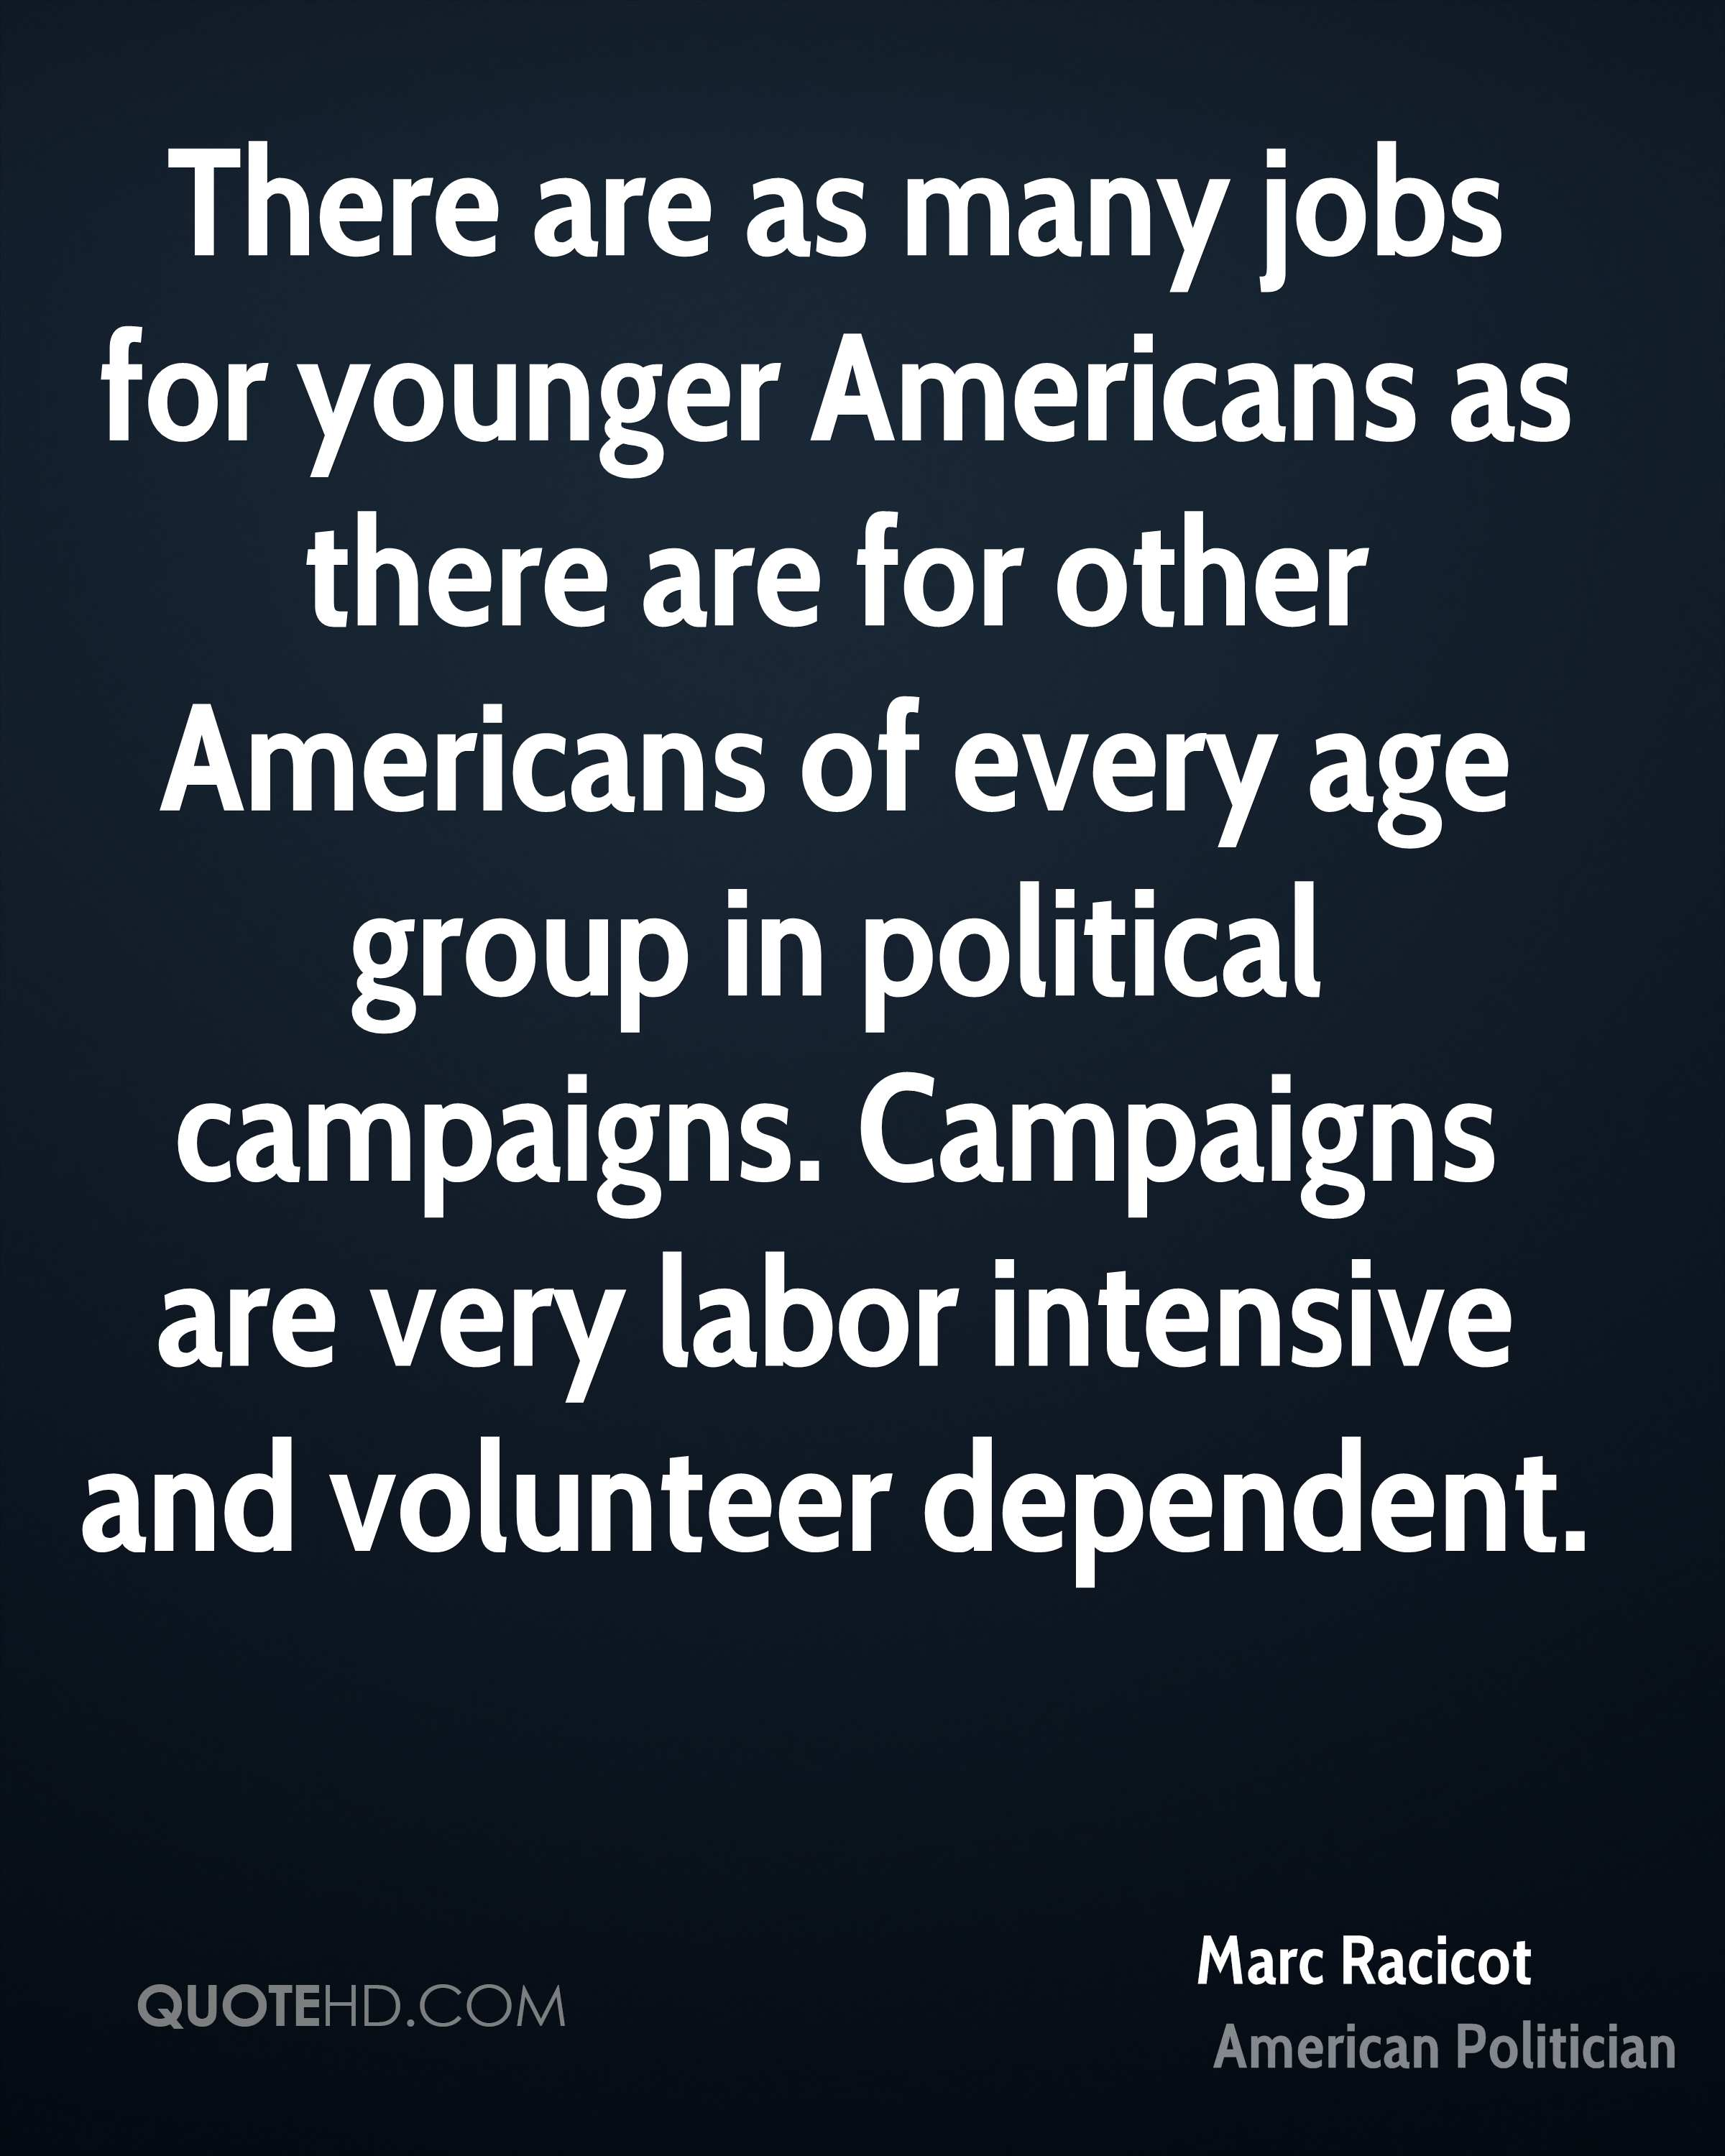 There are as many jobs for younger Americans as there are for other Americans of every age group in political campaigns. Campaigns are very labor intensive and volunteer dependent.